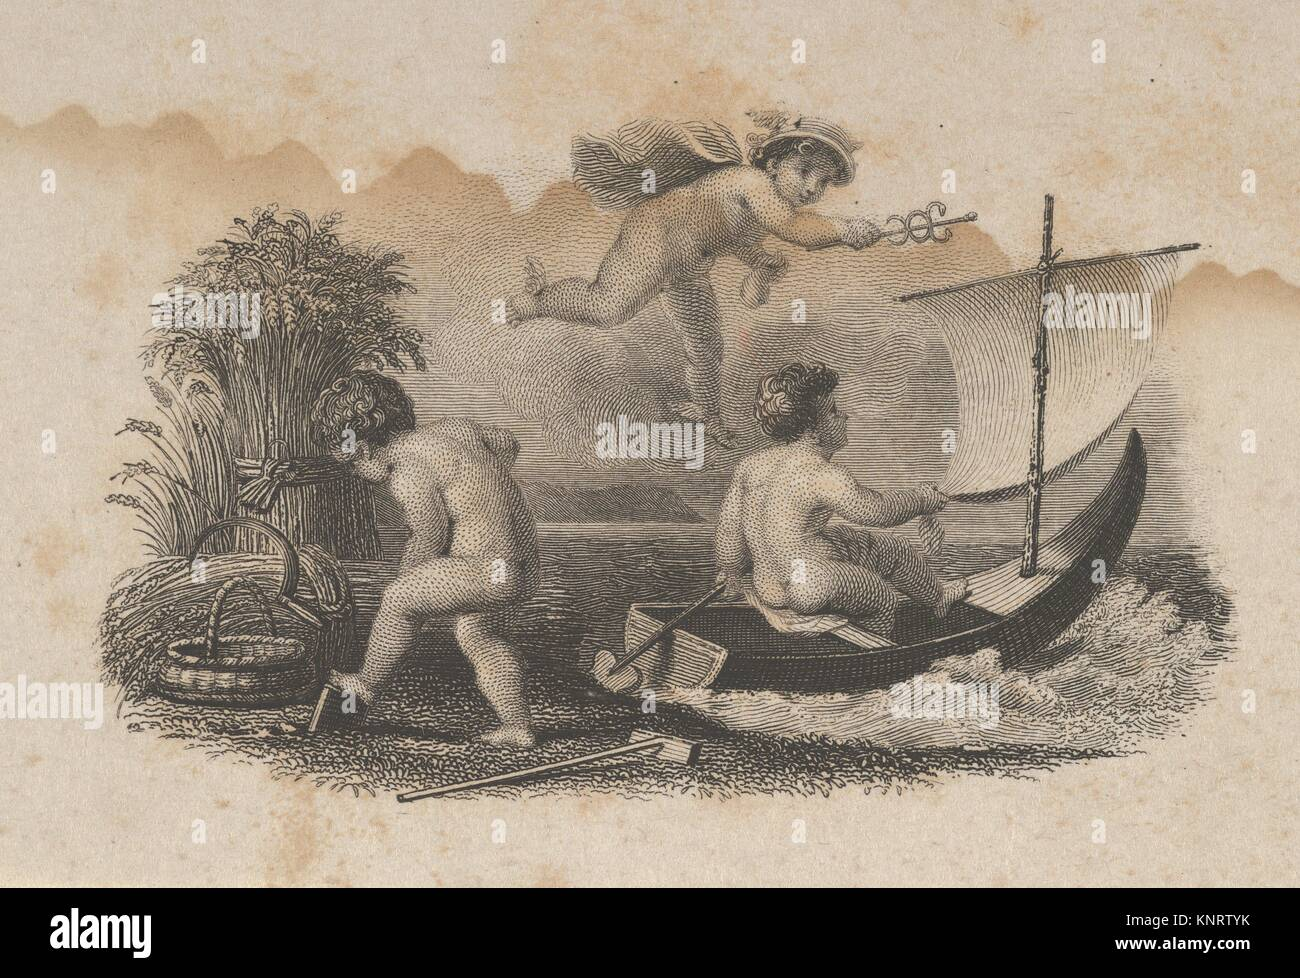 Banknote vignette with three putti symbolizing trade and agriculture. Artist: Attributed to Asher Brown Durand (American, - Stock Image